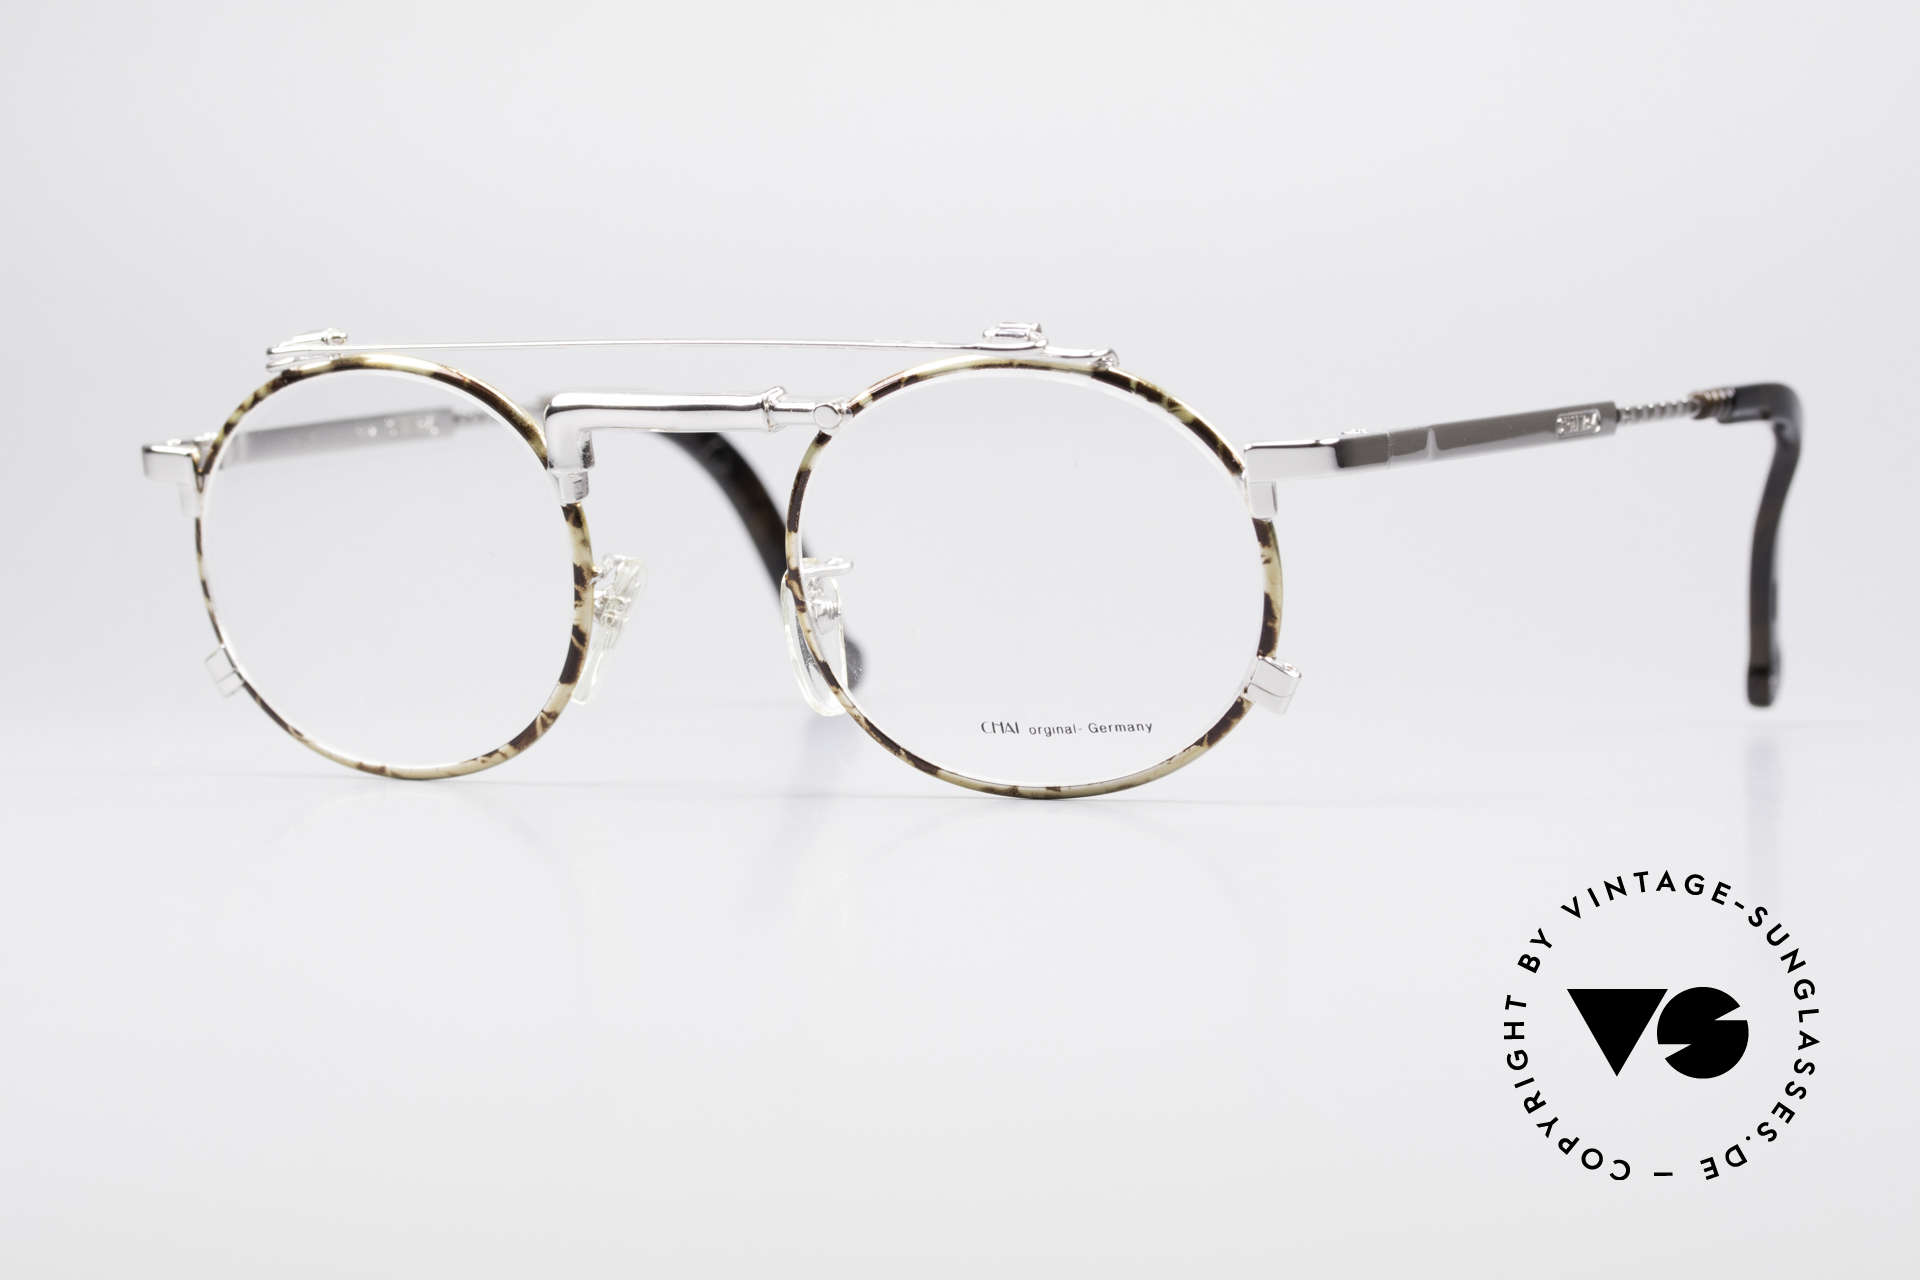 Chai No4 Round Industrial Vintage Eyeglasses, extraordinary VINTAGE eyeglasses-frame by CHAI, Made for Men and Women